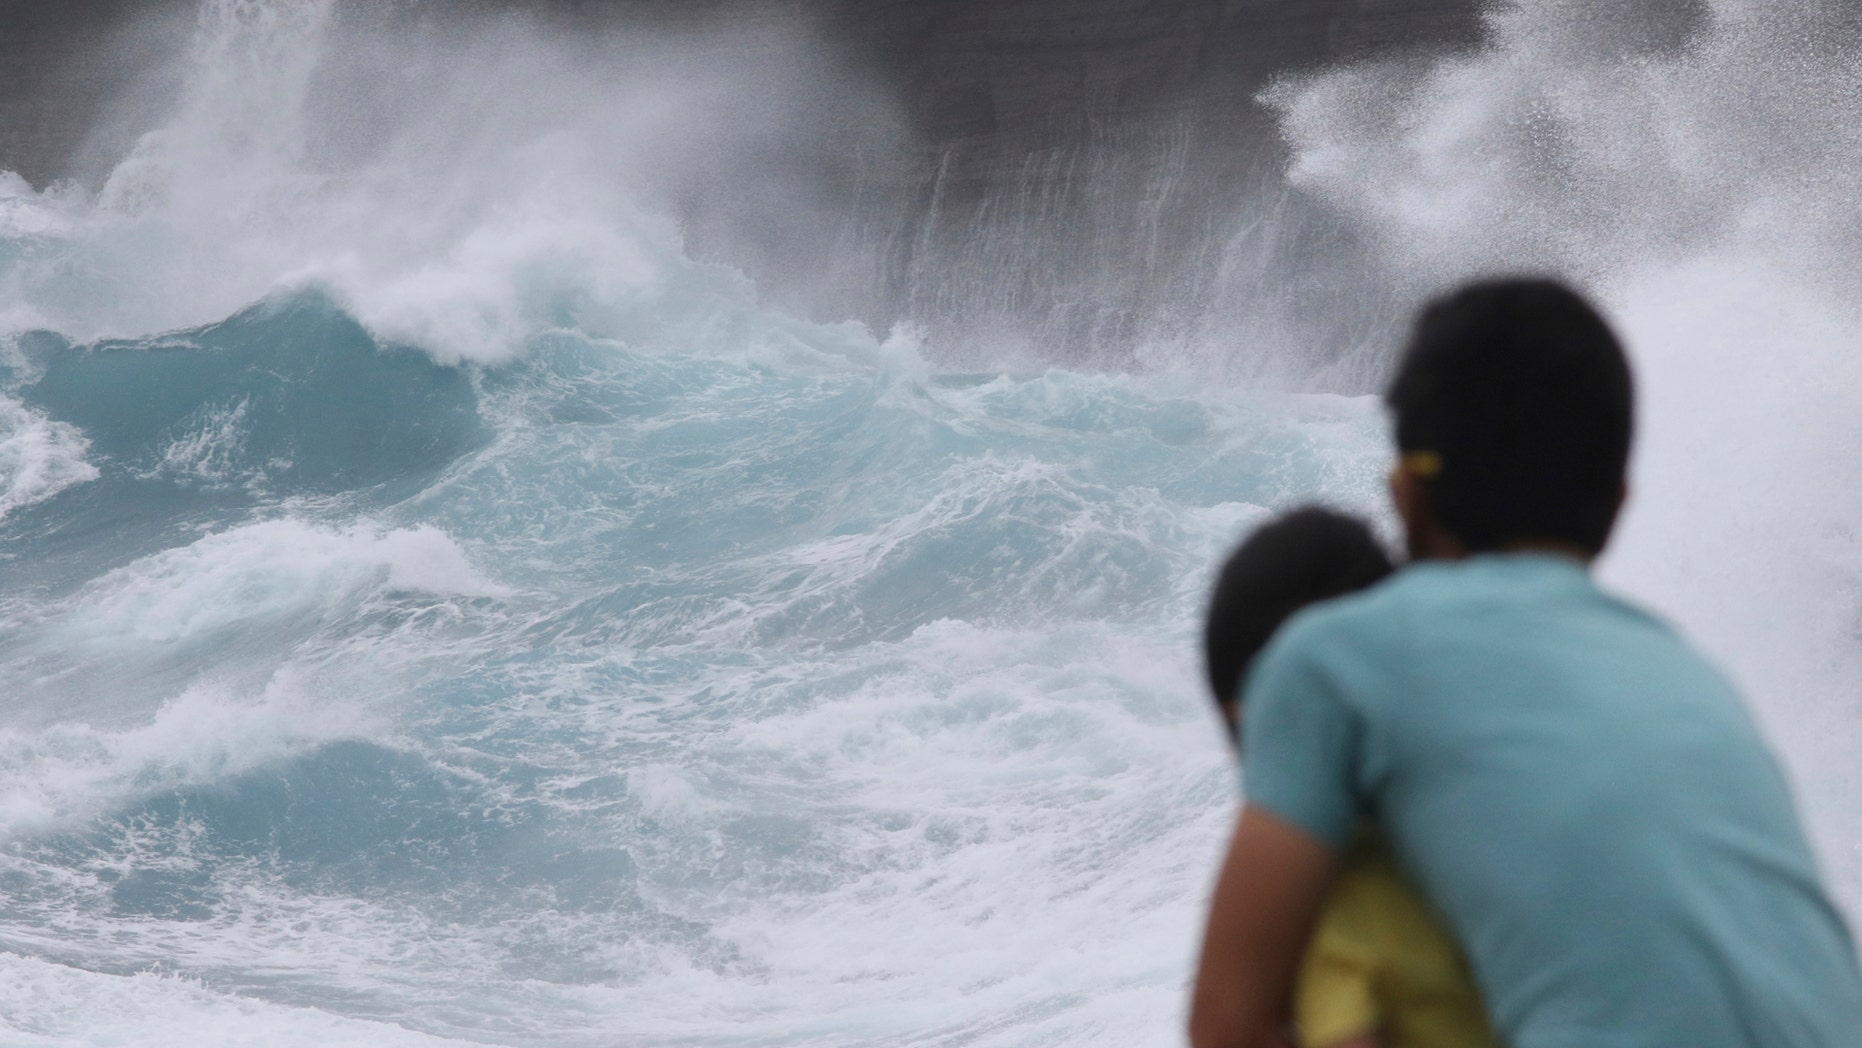 Westlake Legal Group hawaii-climate-change-2 Hawaii's islands are under threat from rising sea levels, experts warn fox-news/science/planet-earth/climate fnc/science fnc ddc954ef-3d94-556f-a1a8-5ea3a7f80c53 Associated Press article